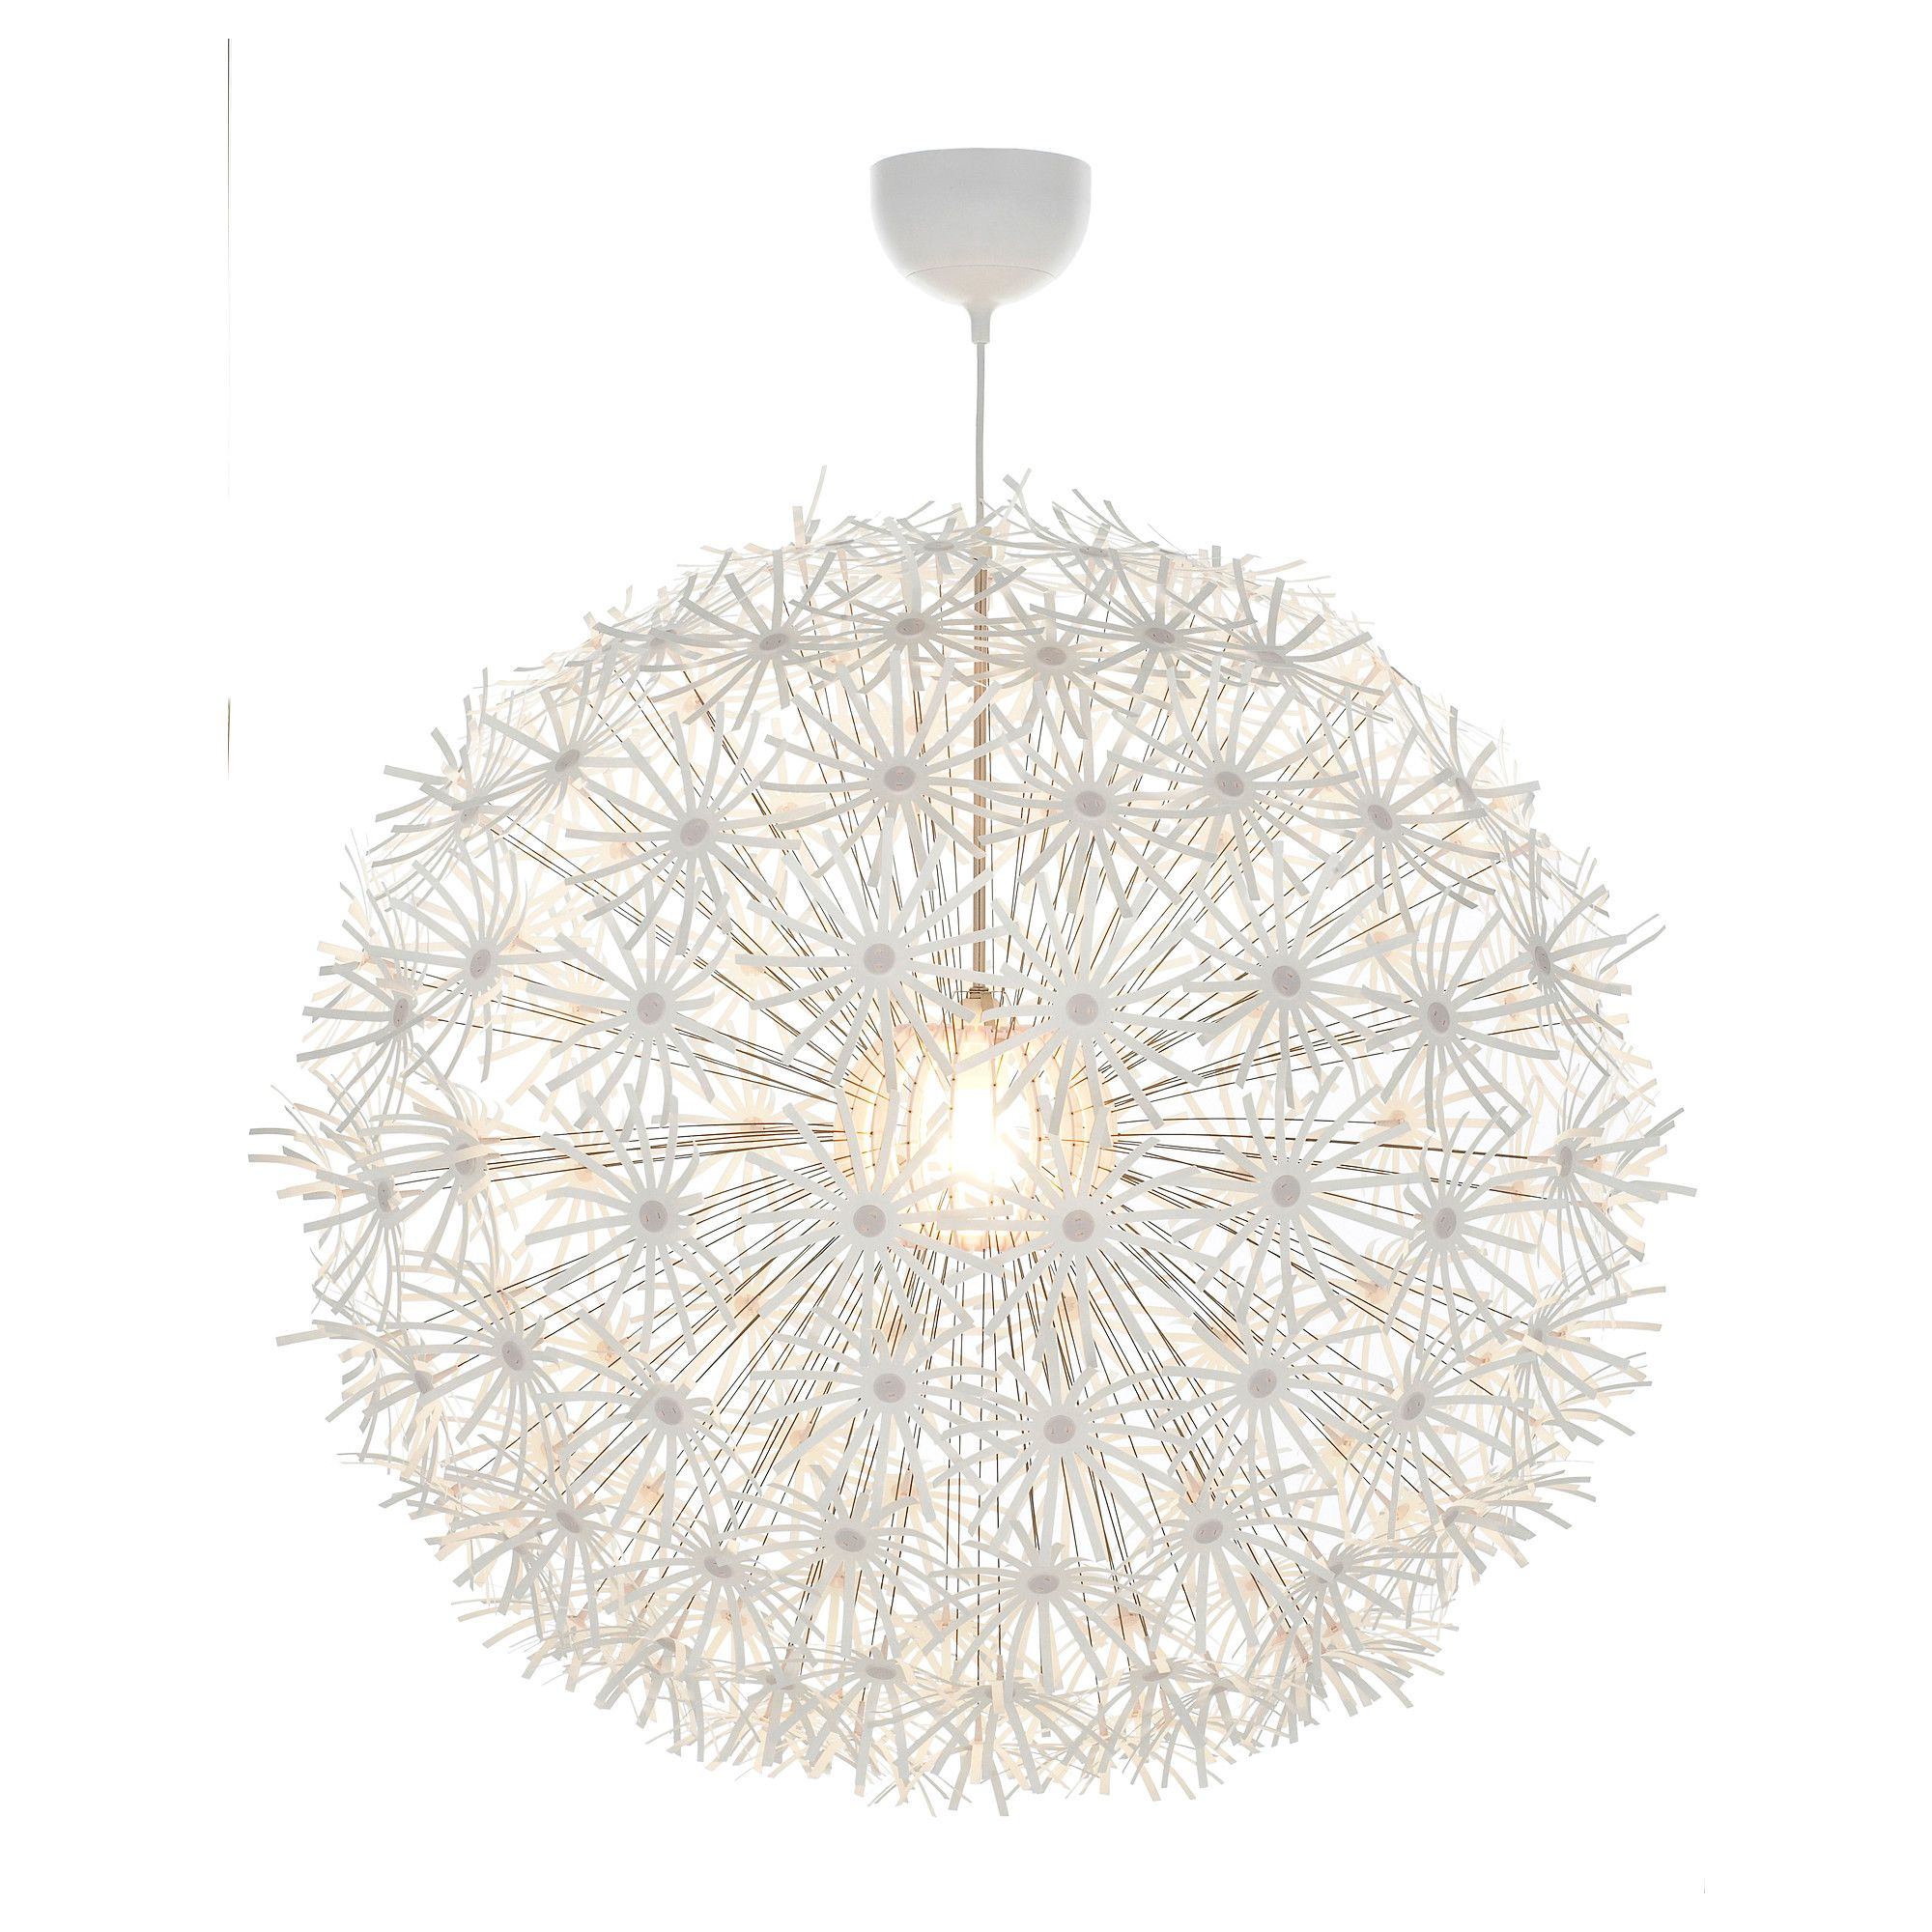 Furniture Home Furnishings Find Your Inspiration Ikea Ps Dandelion Light Ikea I